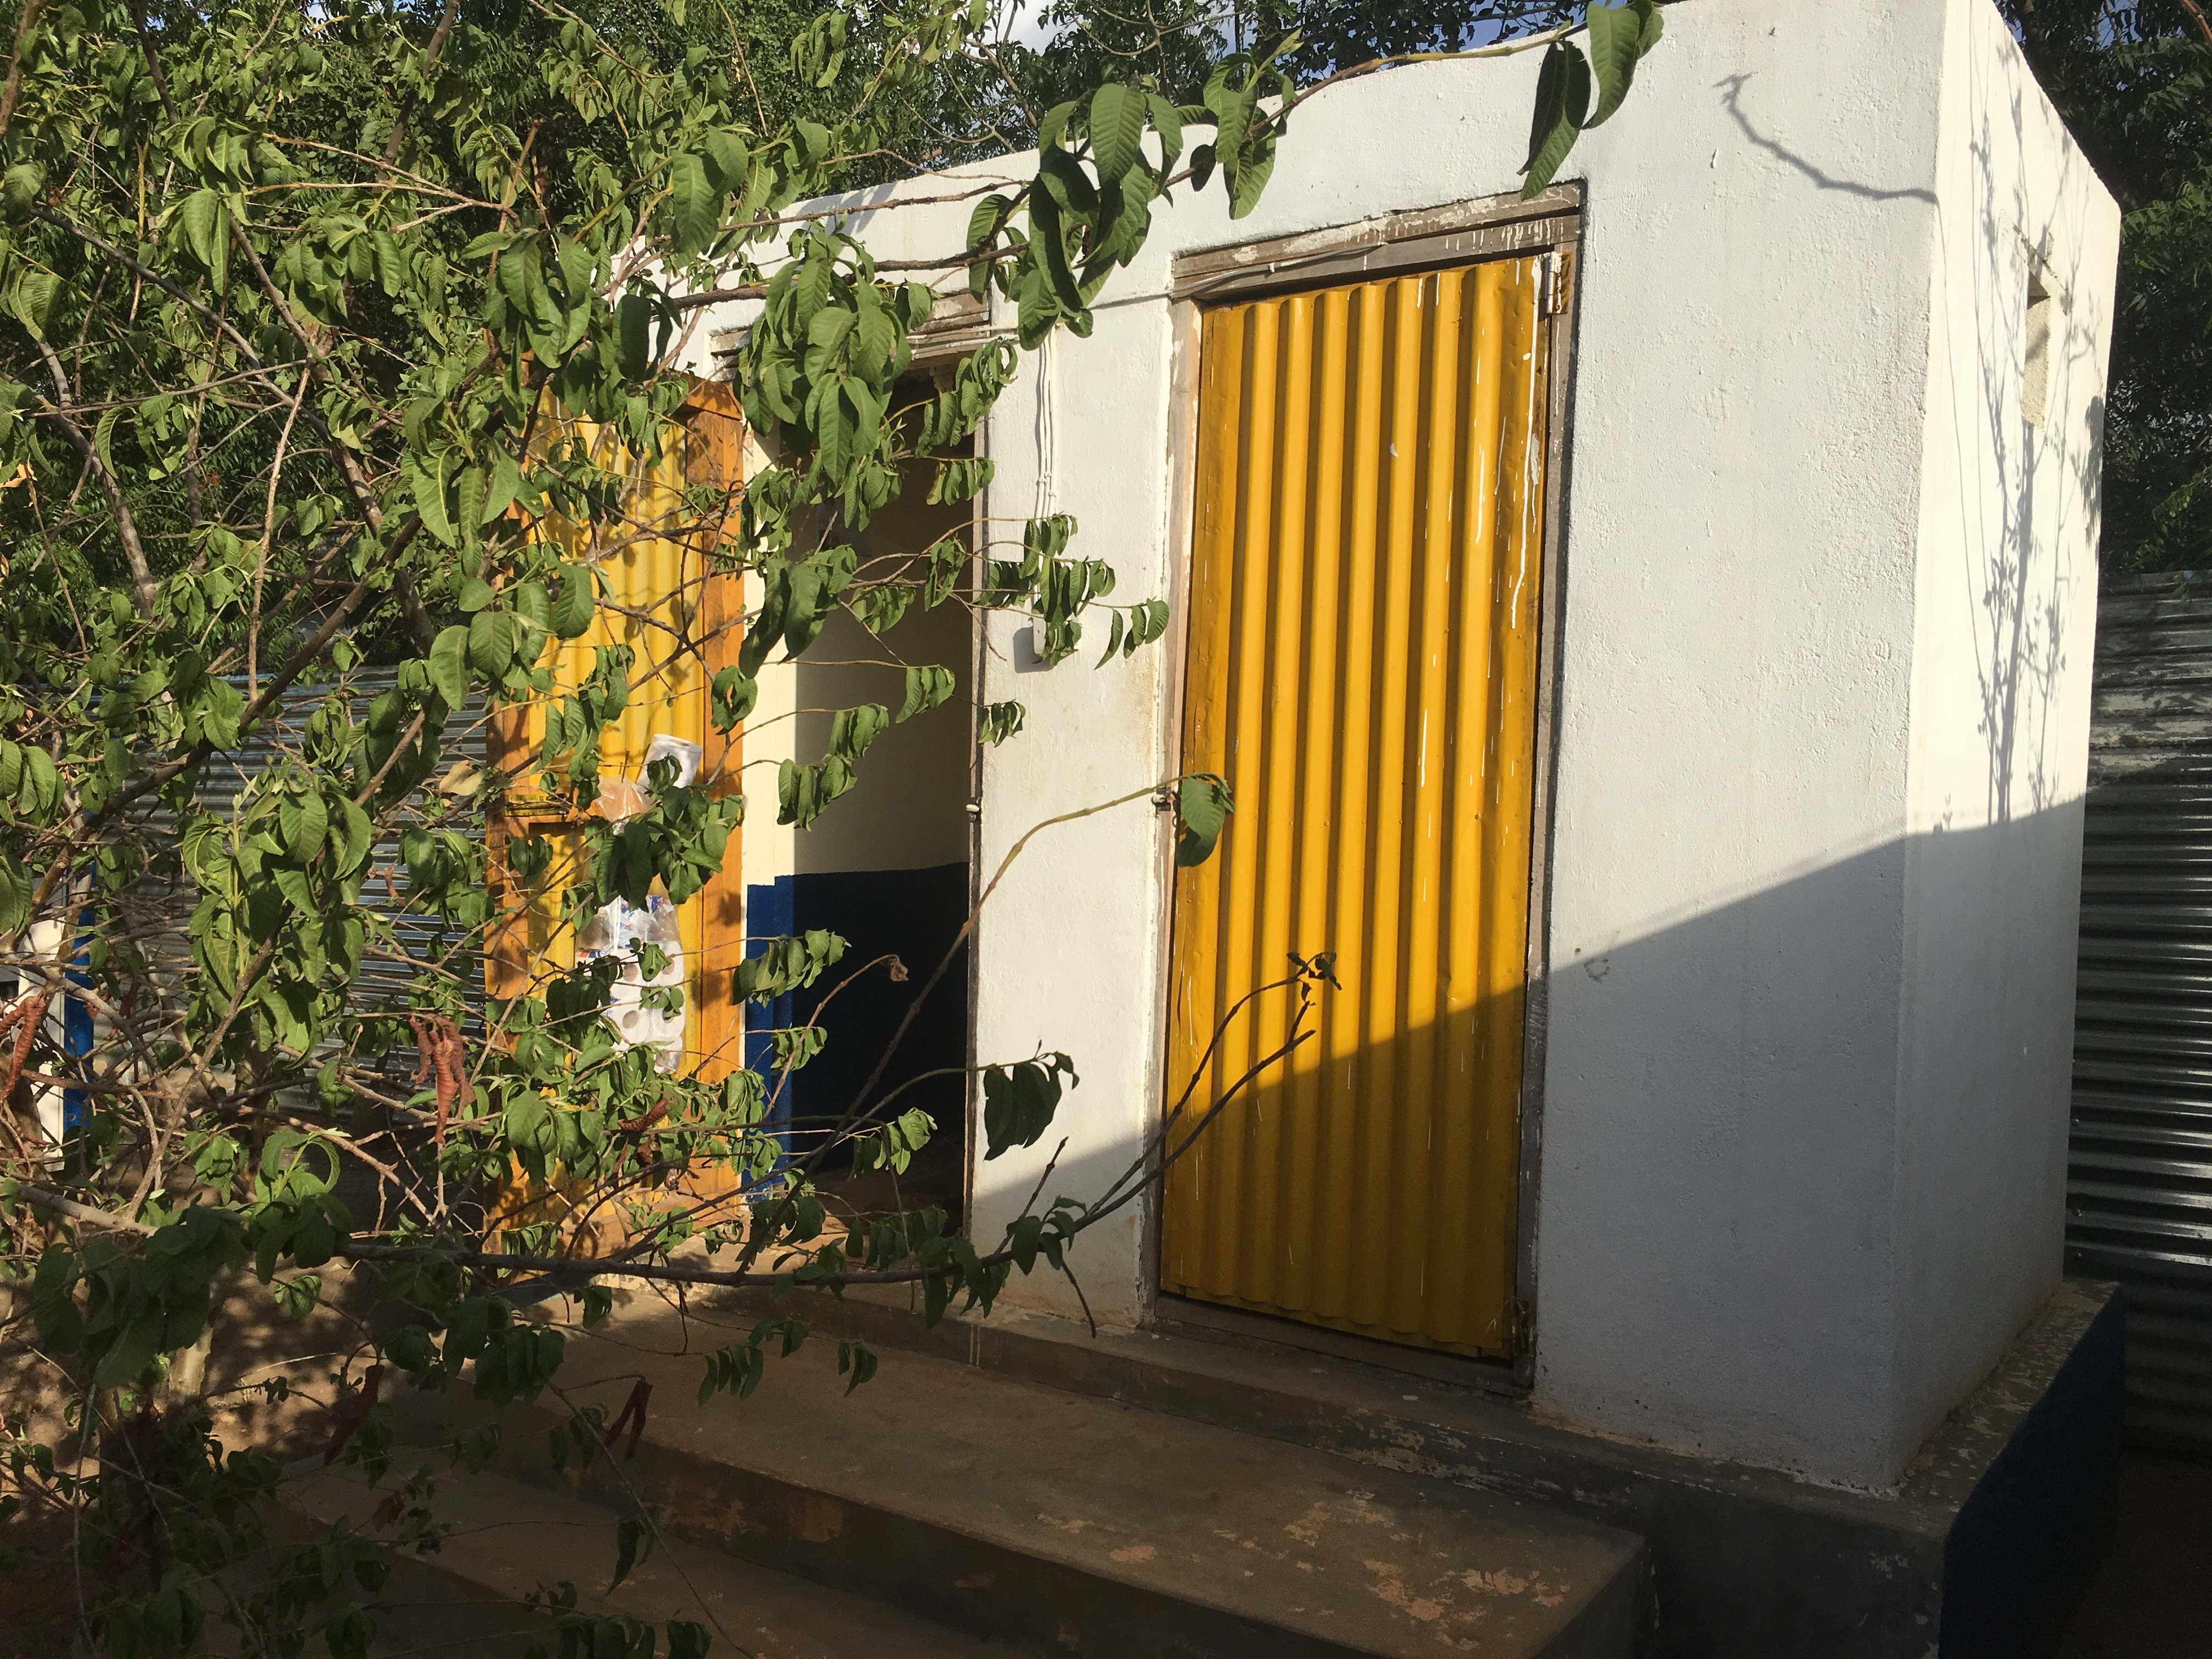 Latrine Mishaps and Lessons Learnt